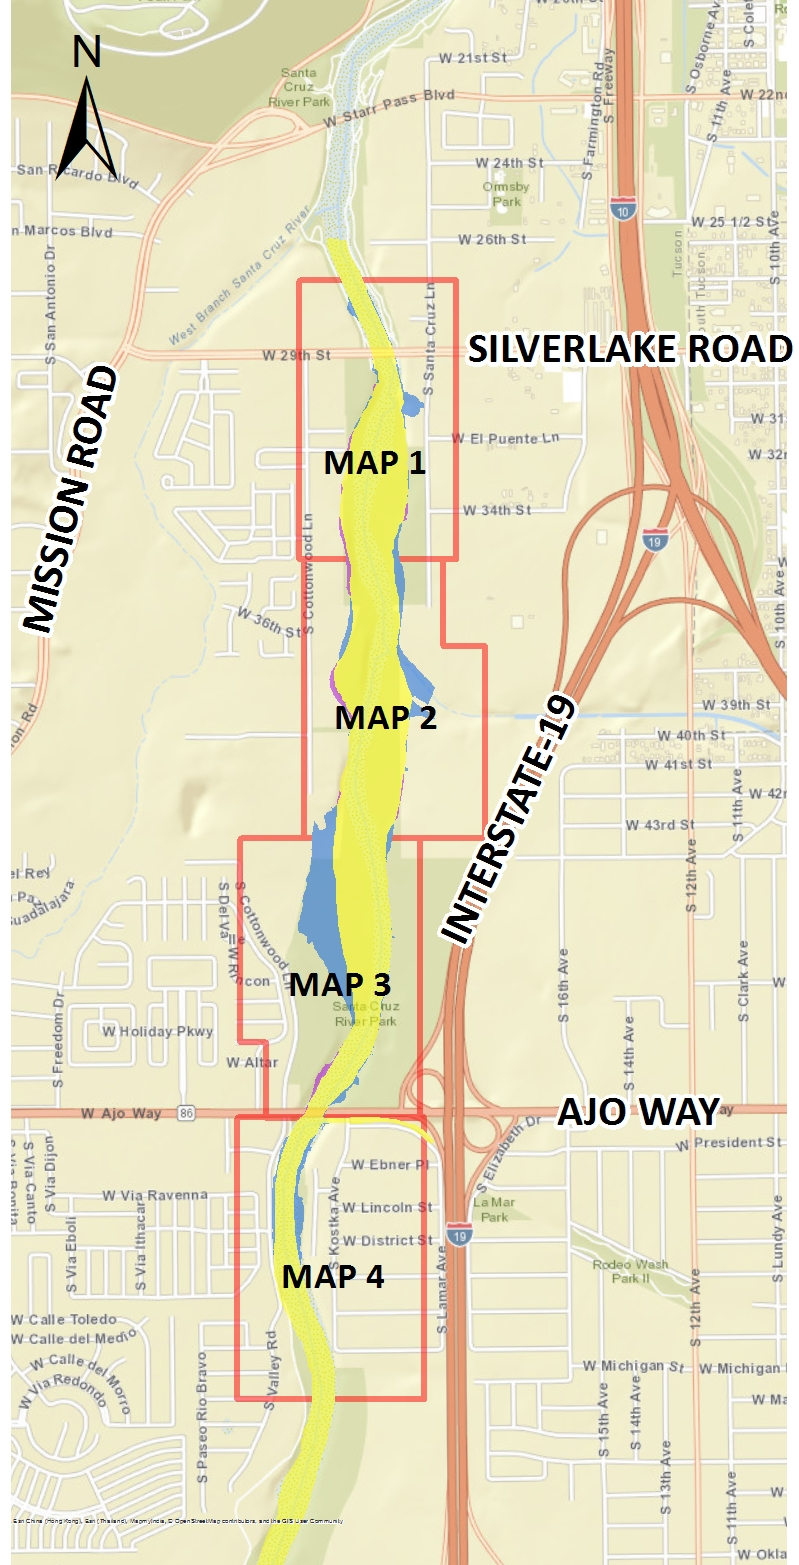 Clickable image to detailed floodway maps